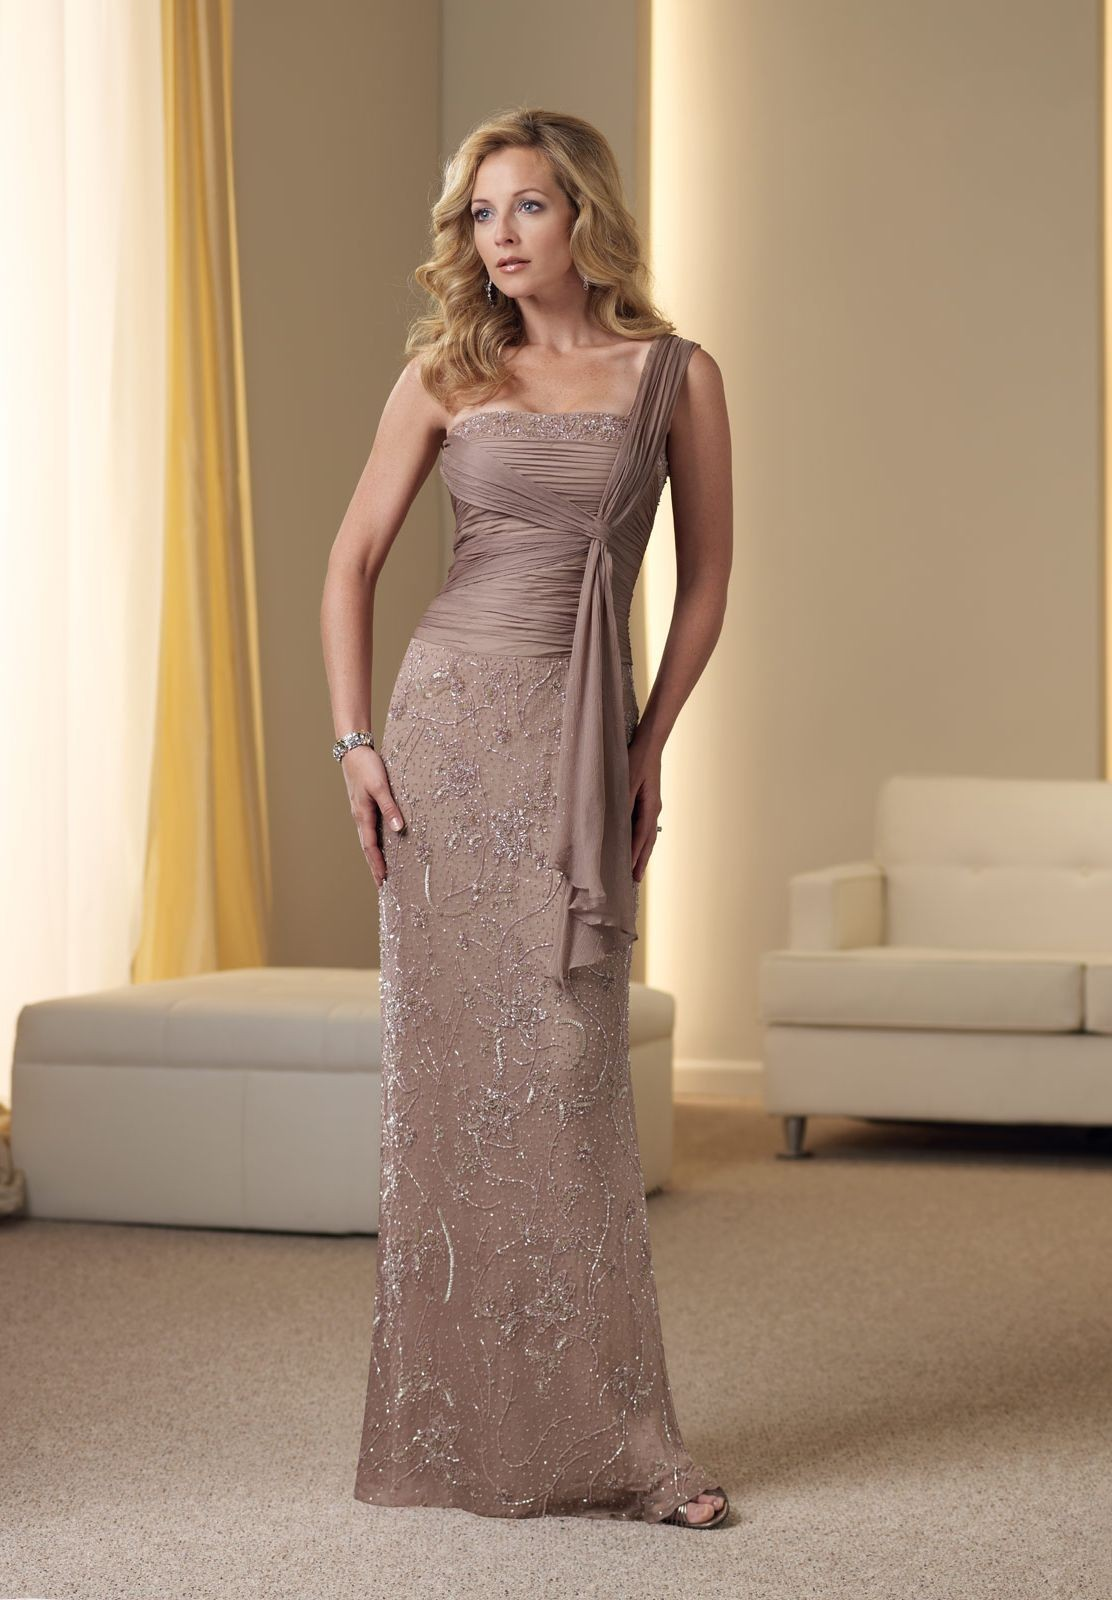 Fall Mother Of The Bride Dresses 201 Petites motherofthebride dresses